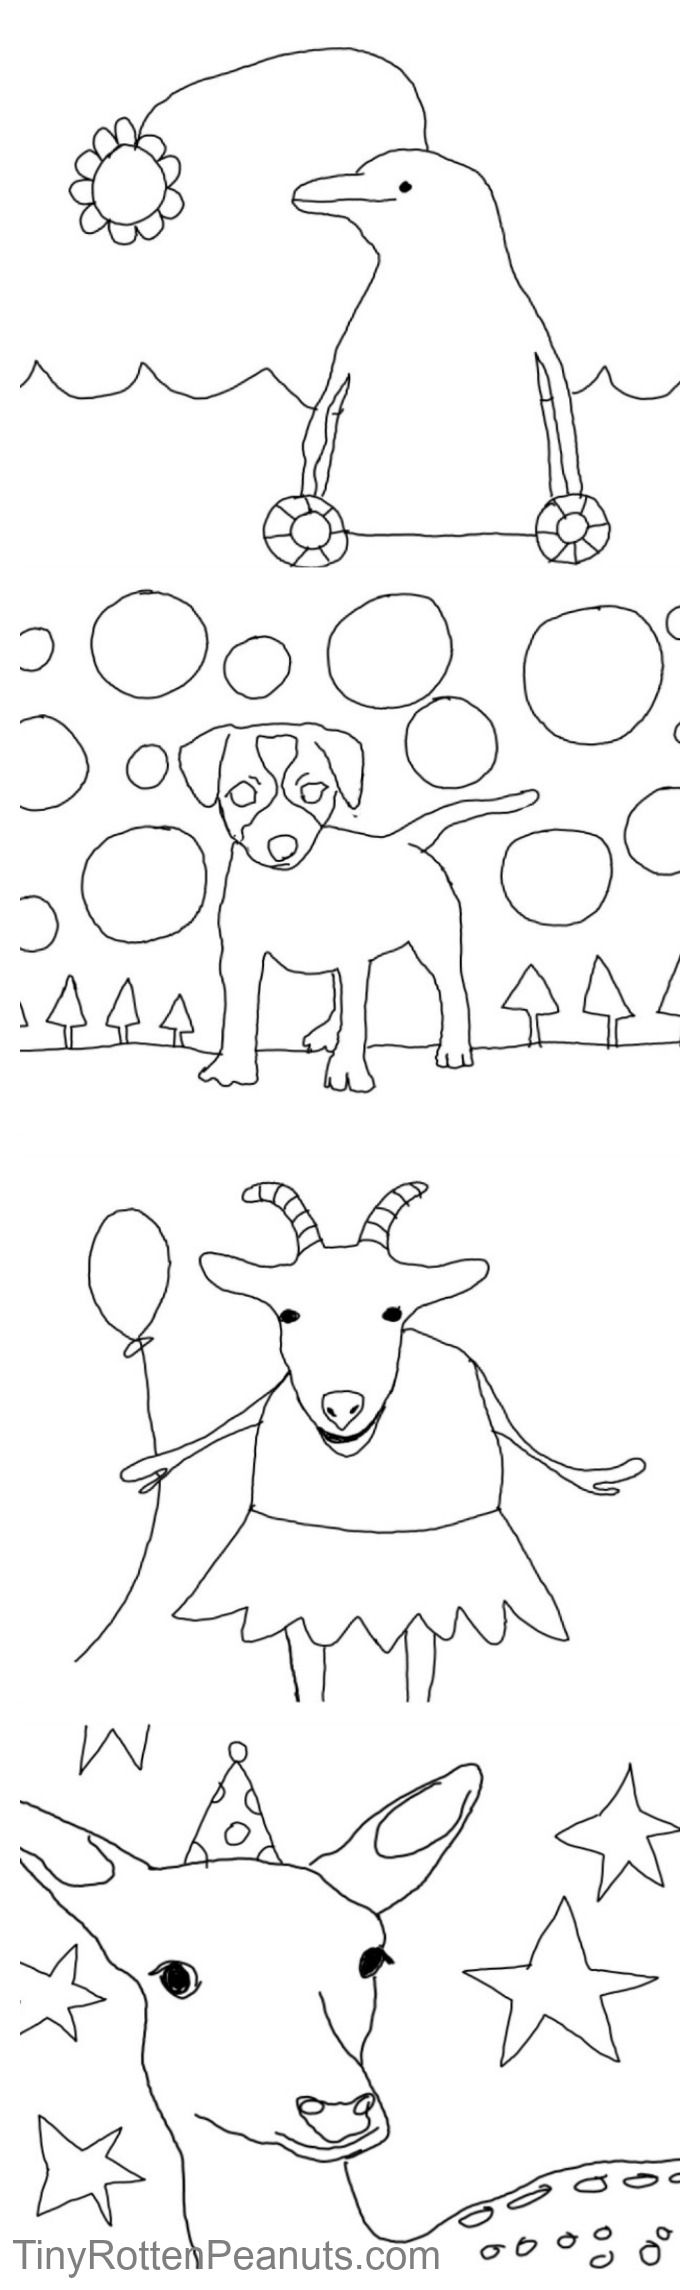 cool coloring sheets made on the sprout - Free Cool Coloring Pages